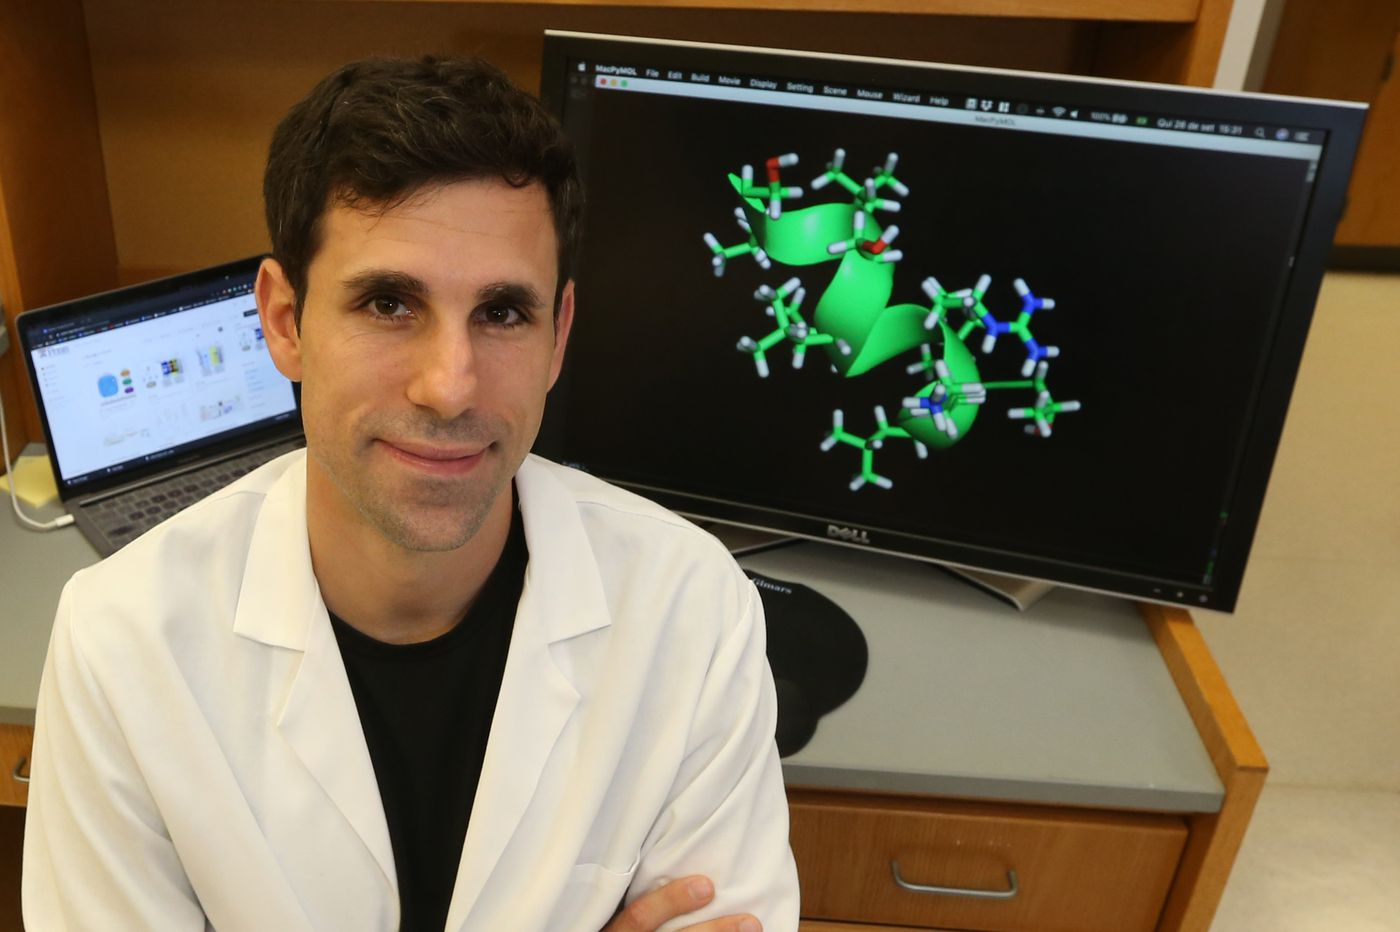 As deadly 'superbugs' outsmart antibiotics, a Penn scientist uses artificial intelligence to design new ones